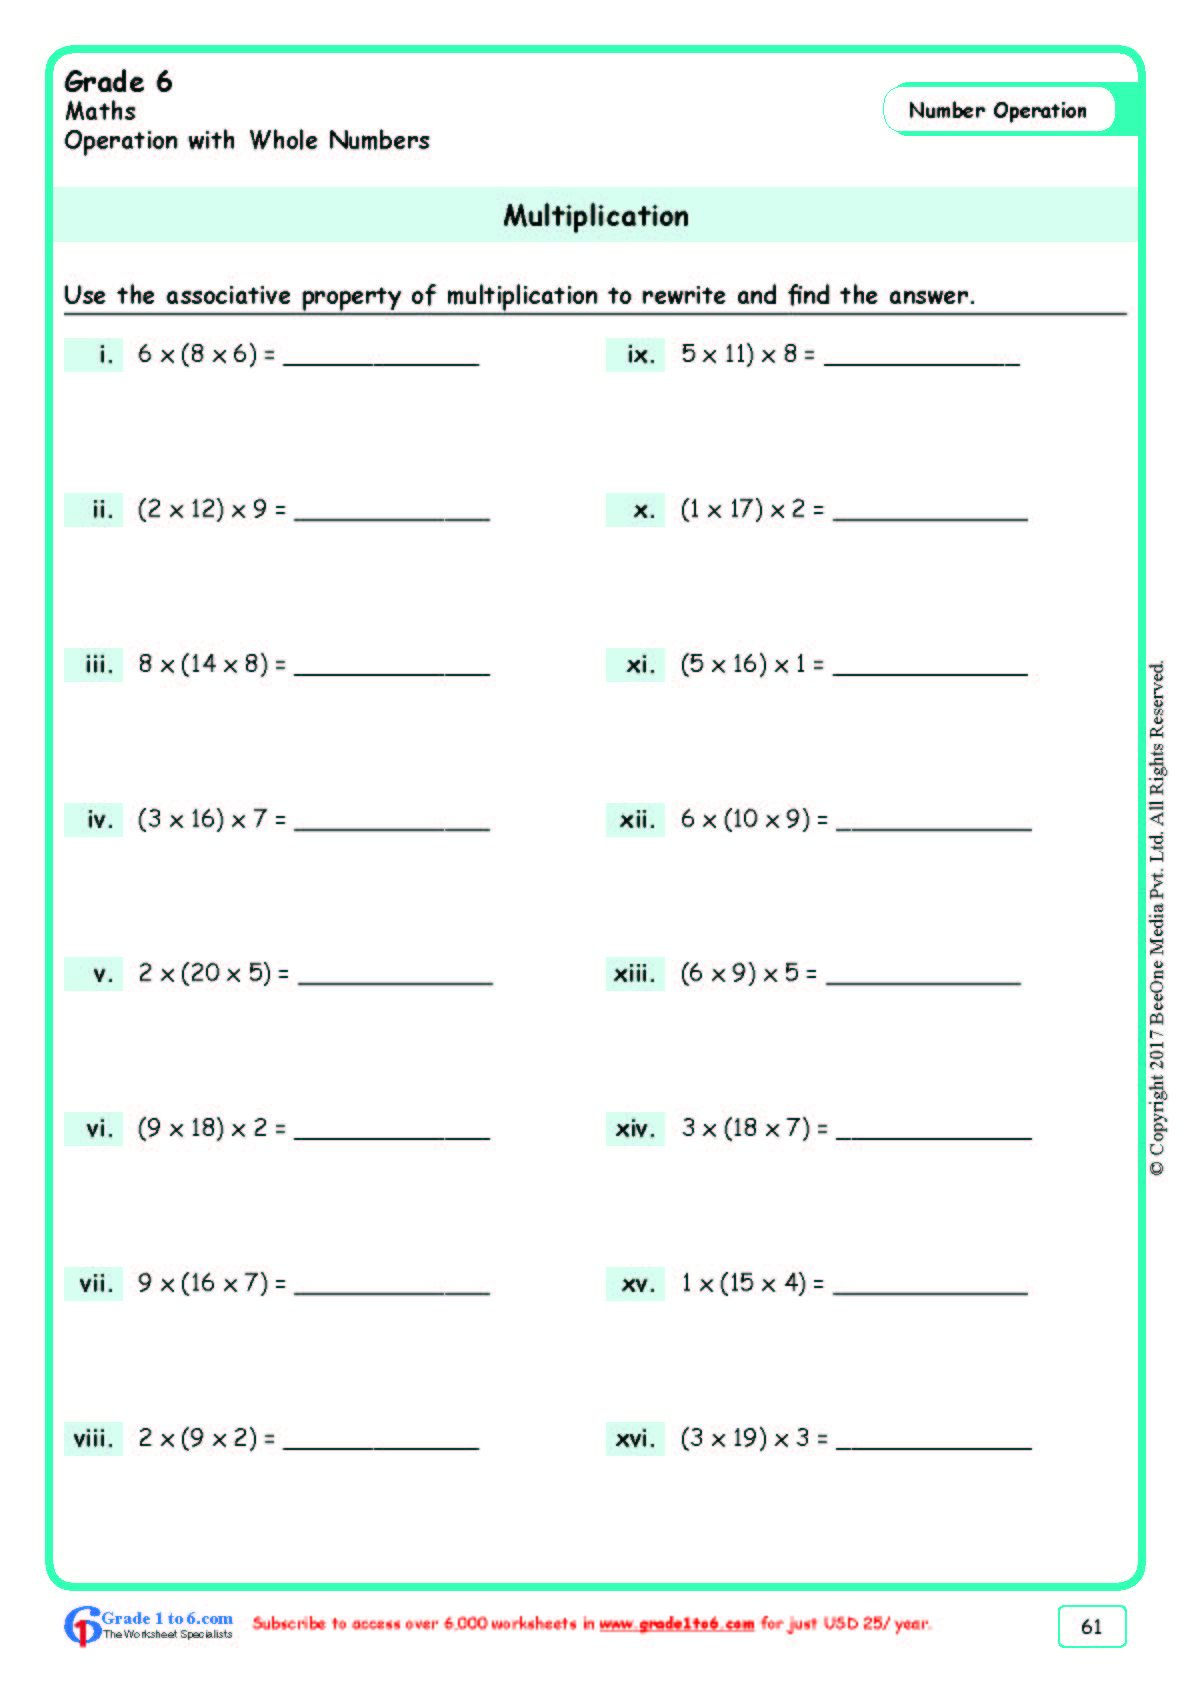 Worksheet Grade 6 Math Multiplication In